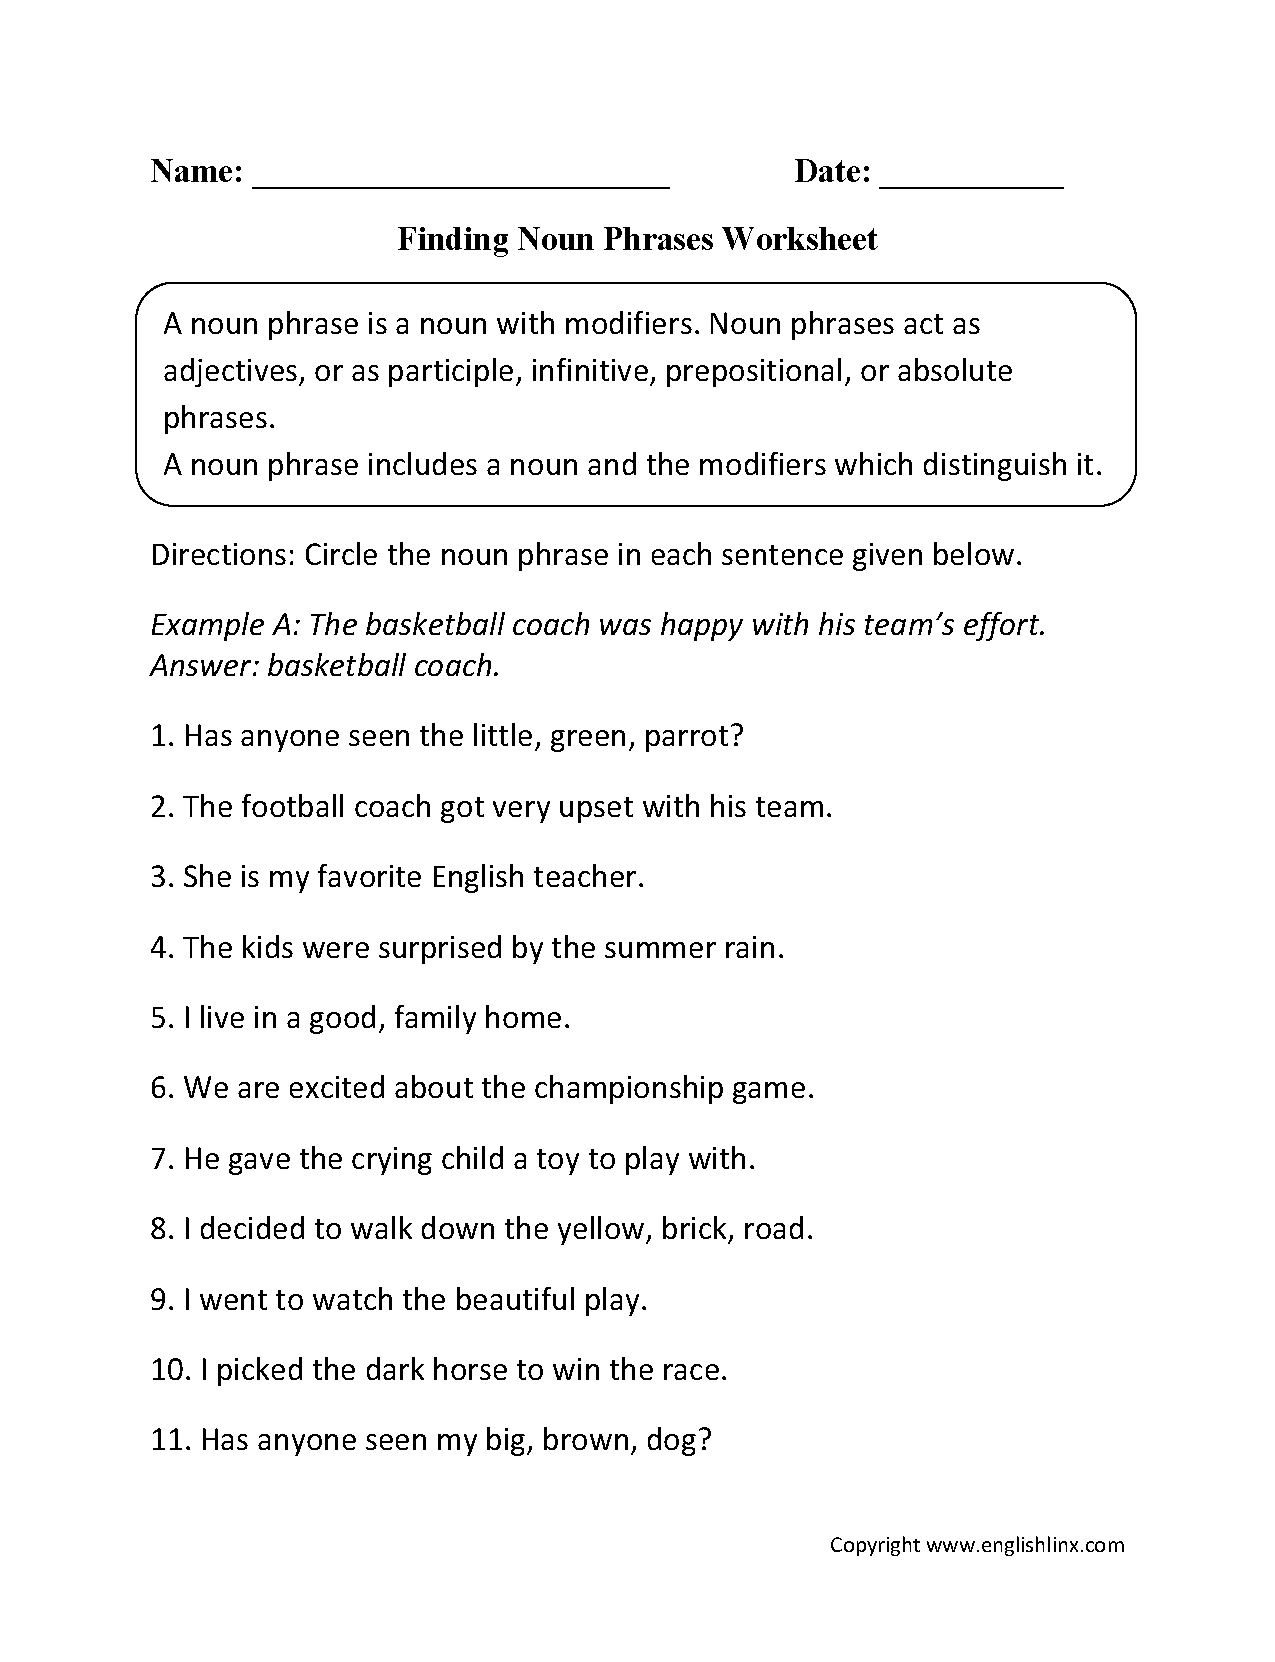 Worksheet Noun Worksheets High School englishlinx com nouns worksheets noun phrases worksheets